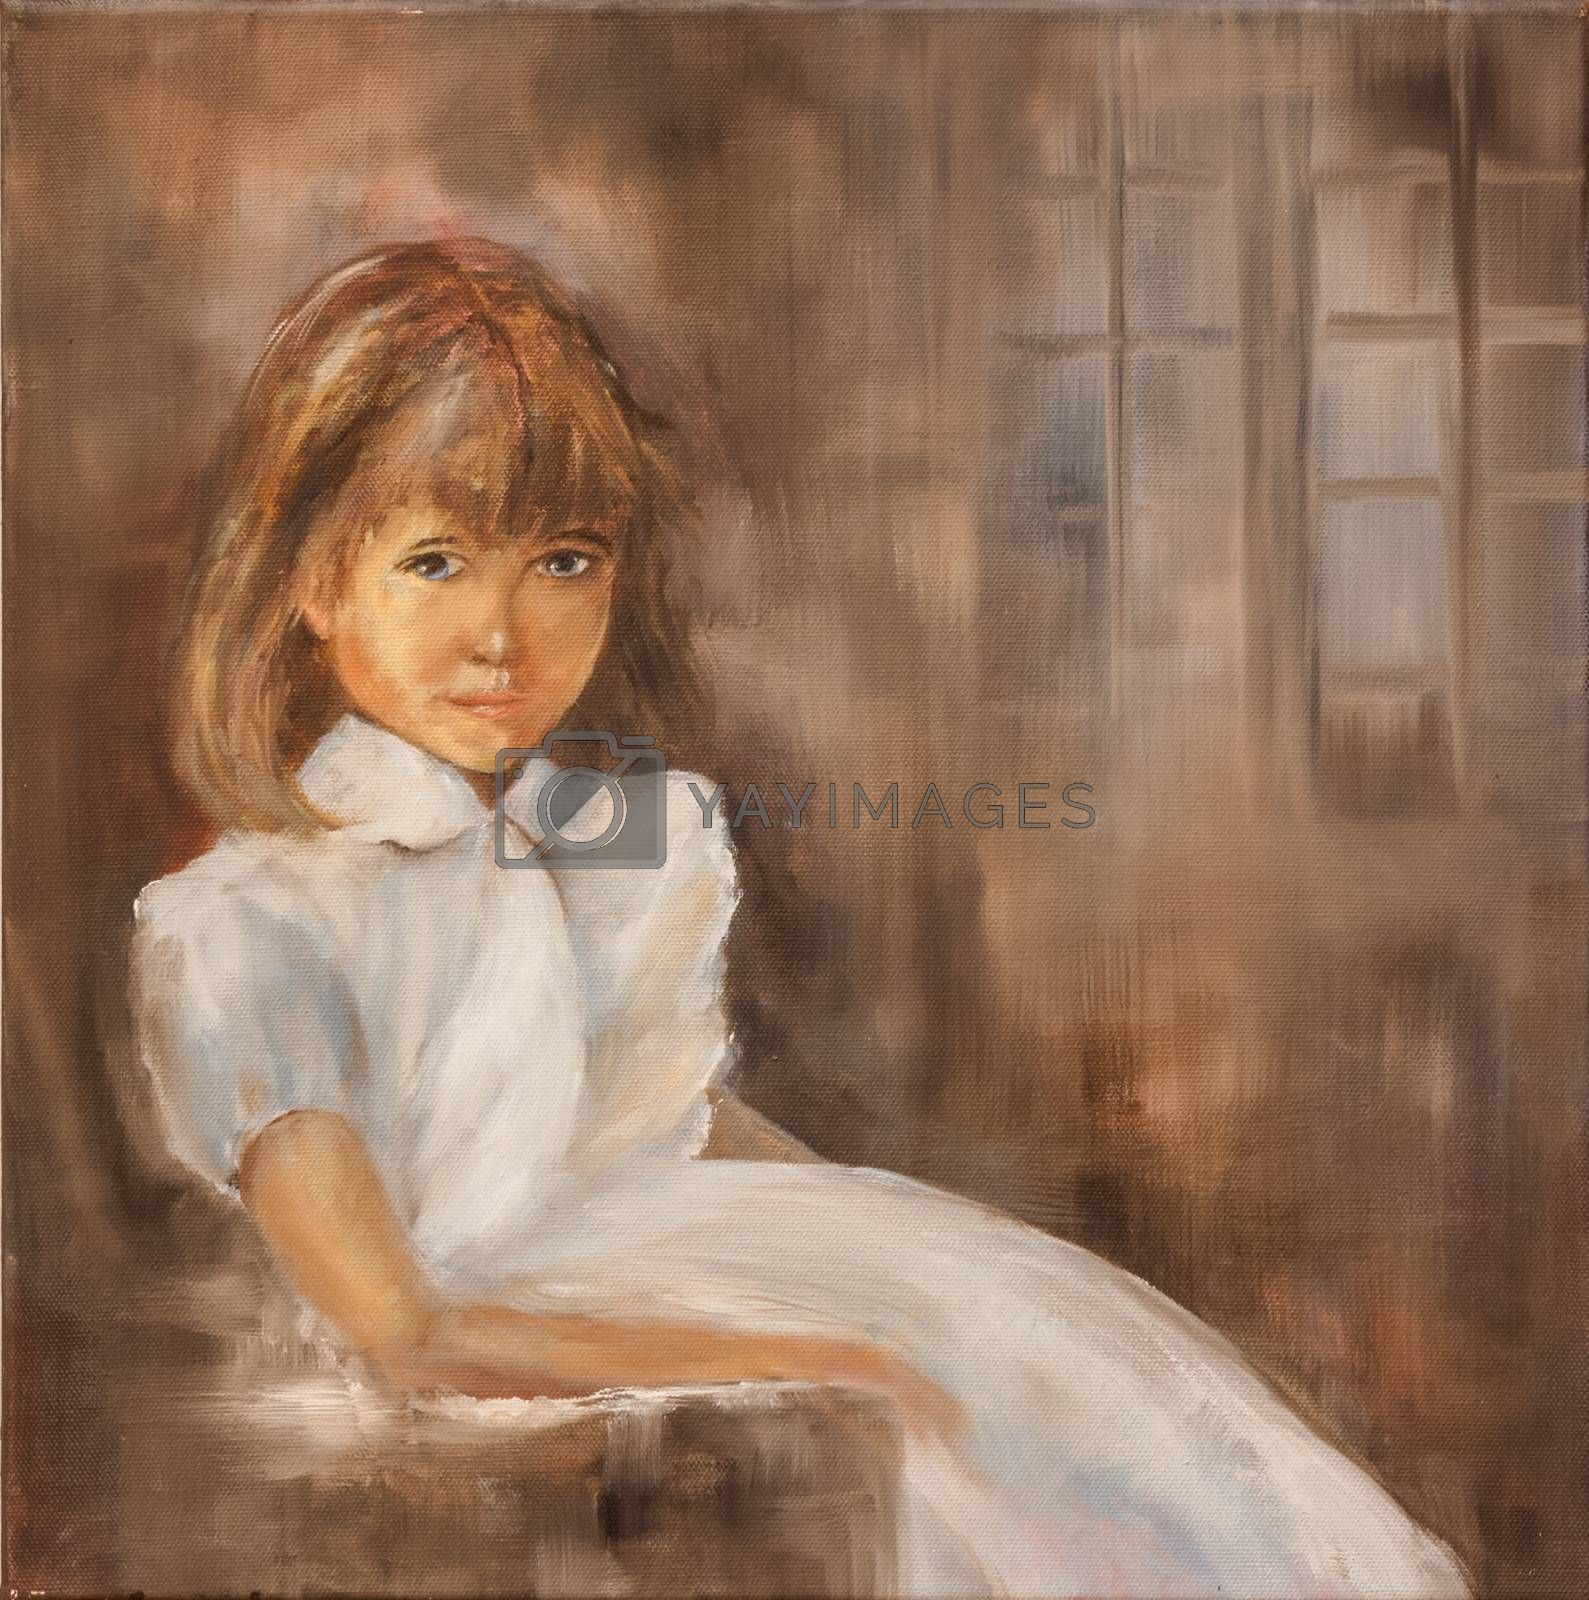 Portrait of a young lady. She is sitting in a chair wearing a white dress. Painted with oil on canvas.